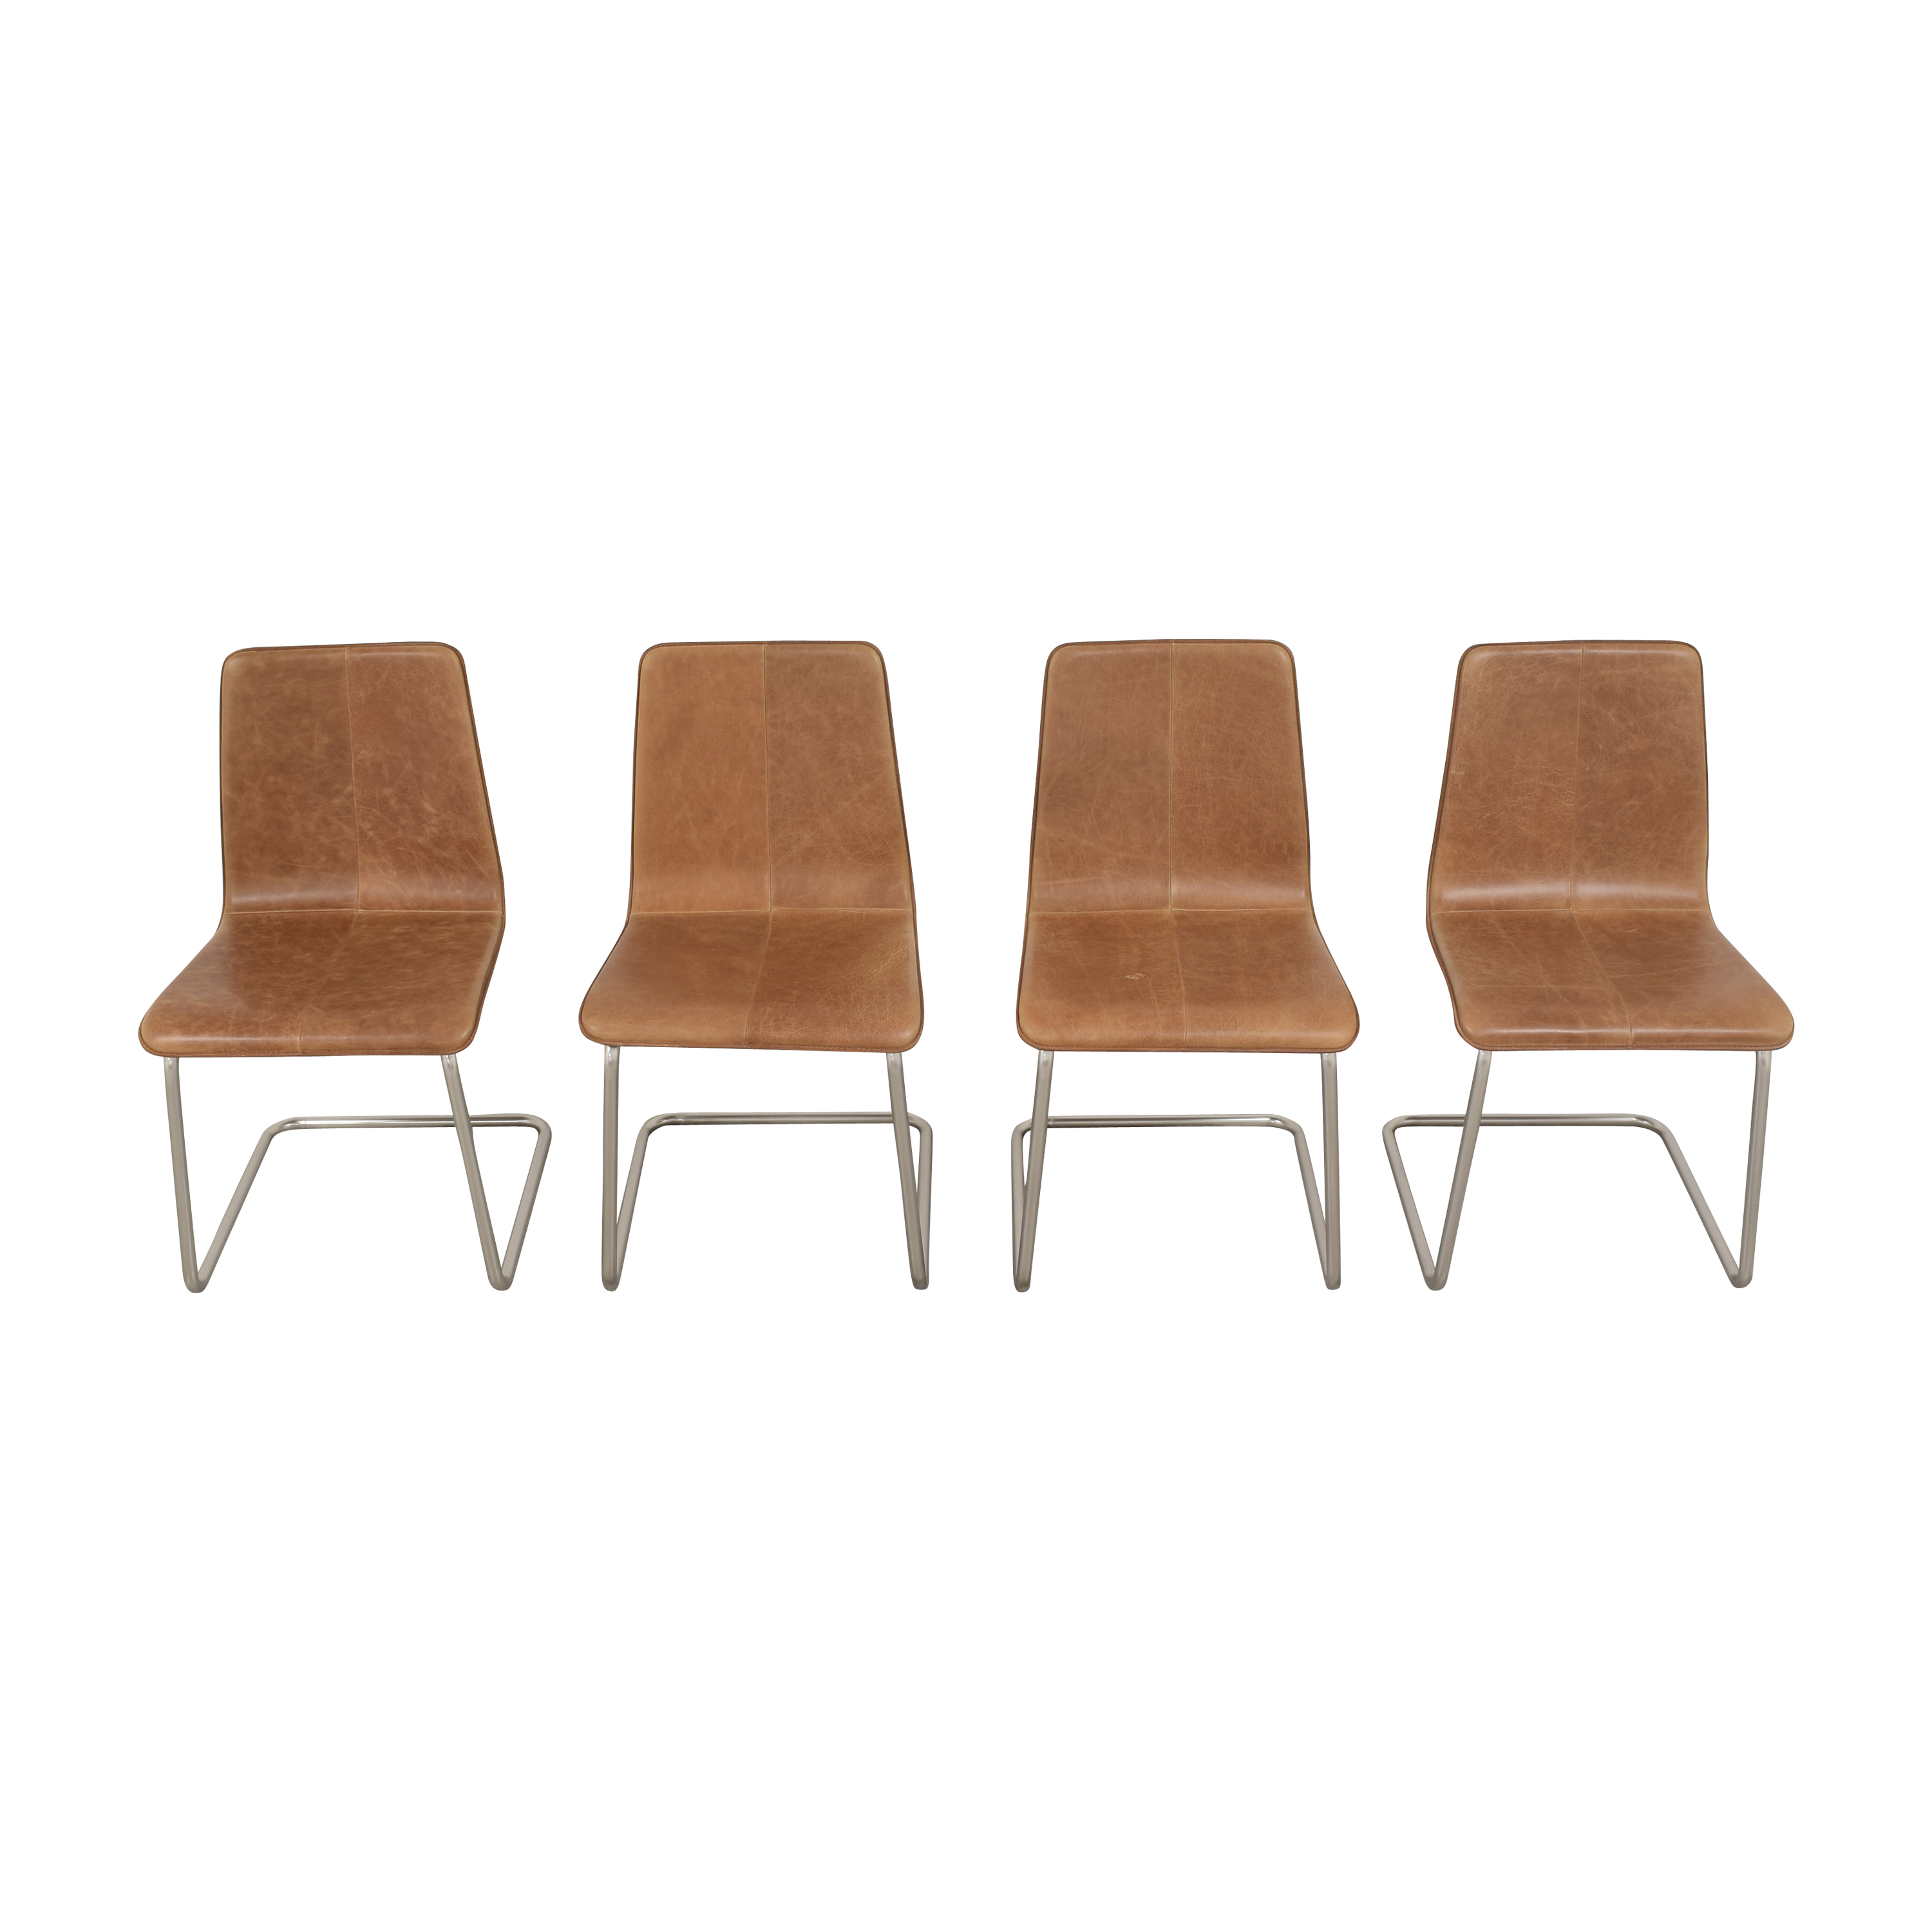 CB2 CB2 Pony Dining Chairs coupon